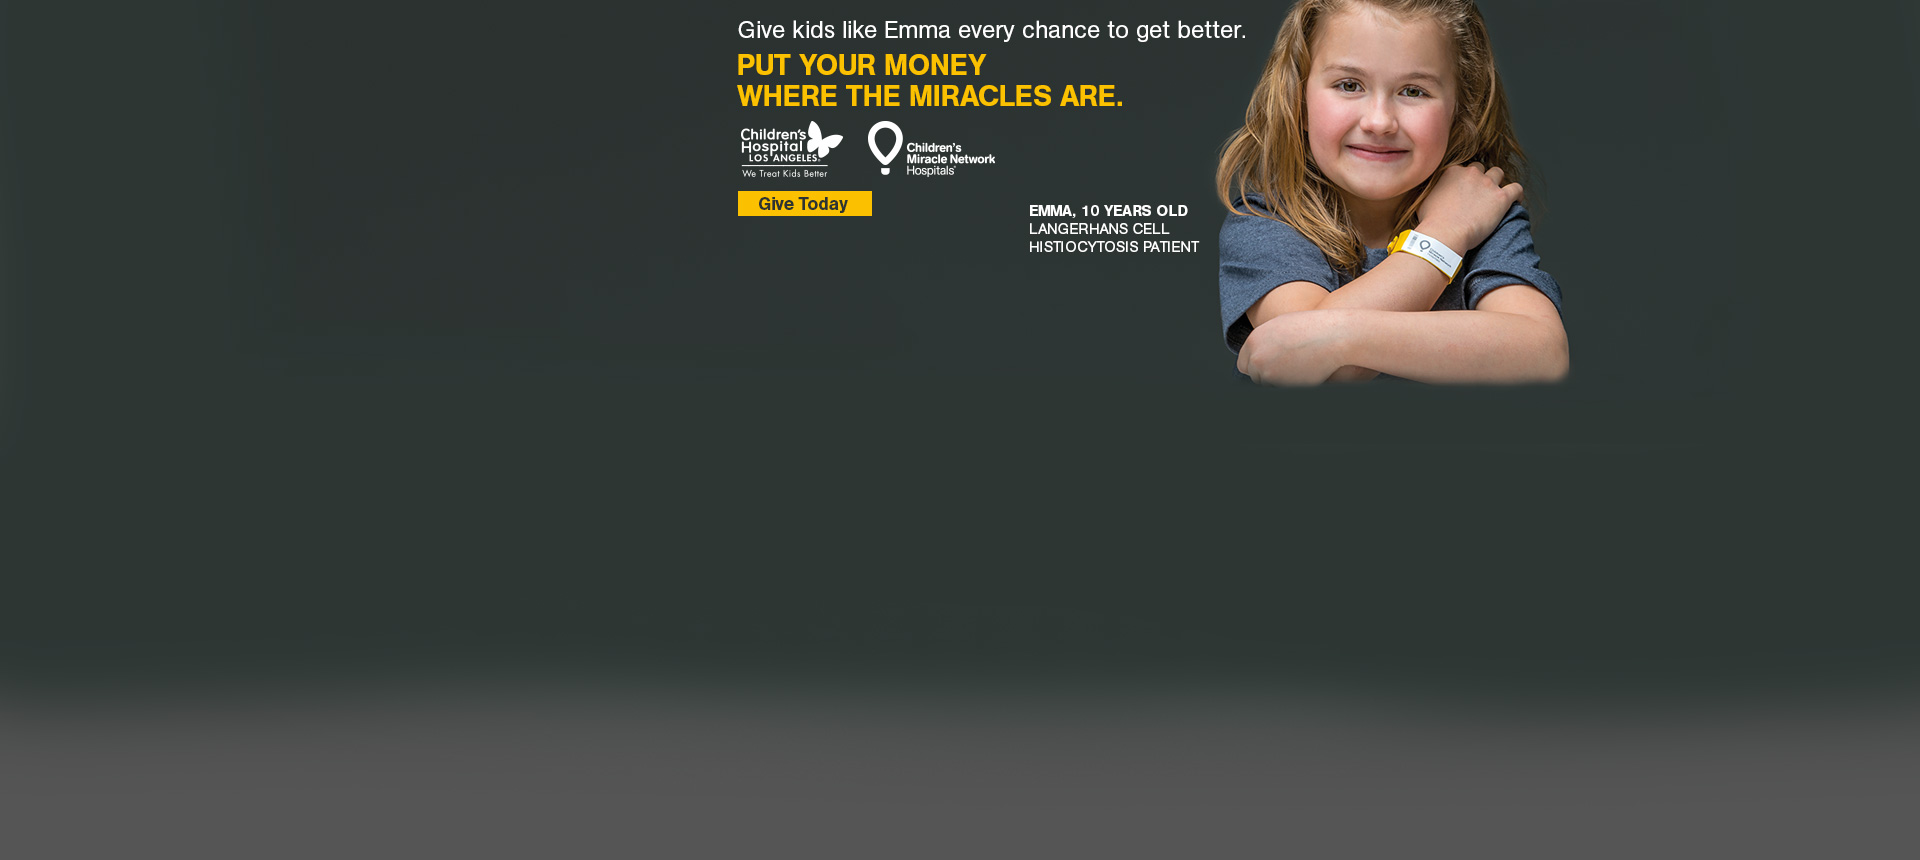 CMN and CHLA - Donate Today